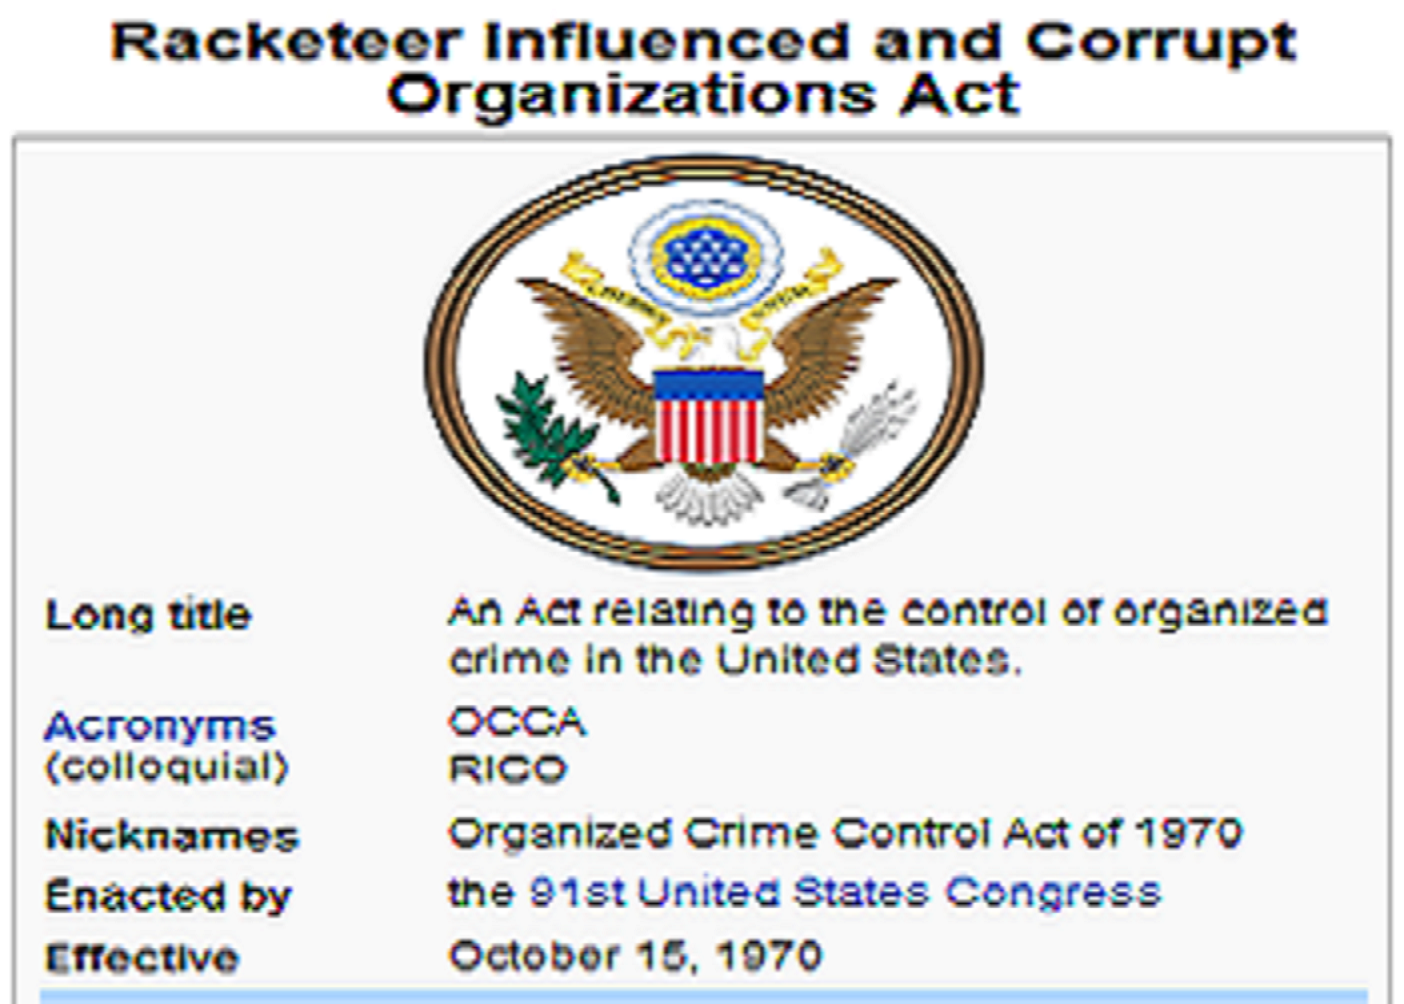 an analysis of the congress passed the racketeer influenced and corrupt organisations act Congress passed the racketeer influenced and corrupt organizations act, commonly known as rico, in 1970 out of a concern over rising mob infiltration of unions and corporations.